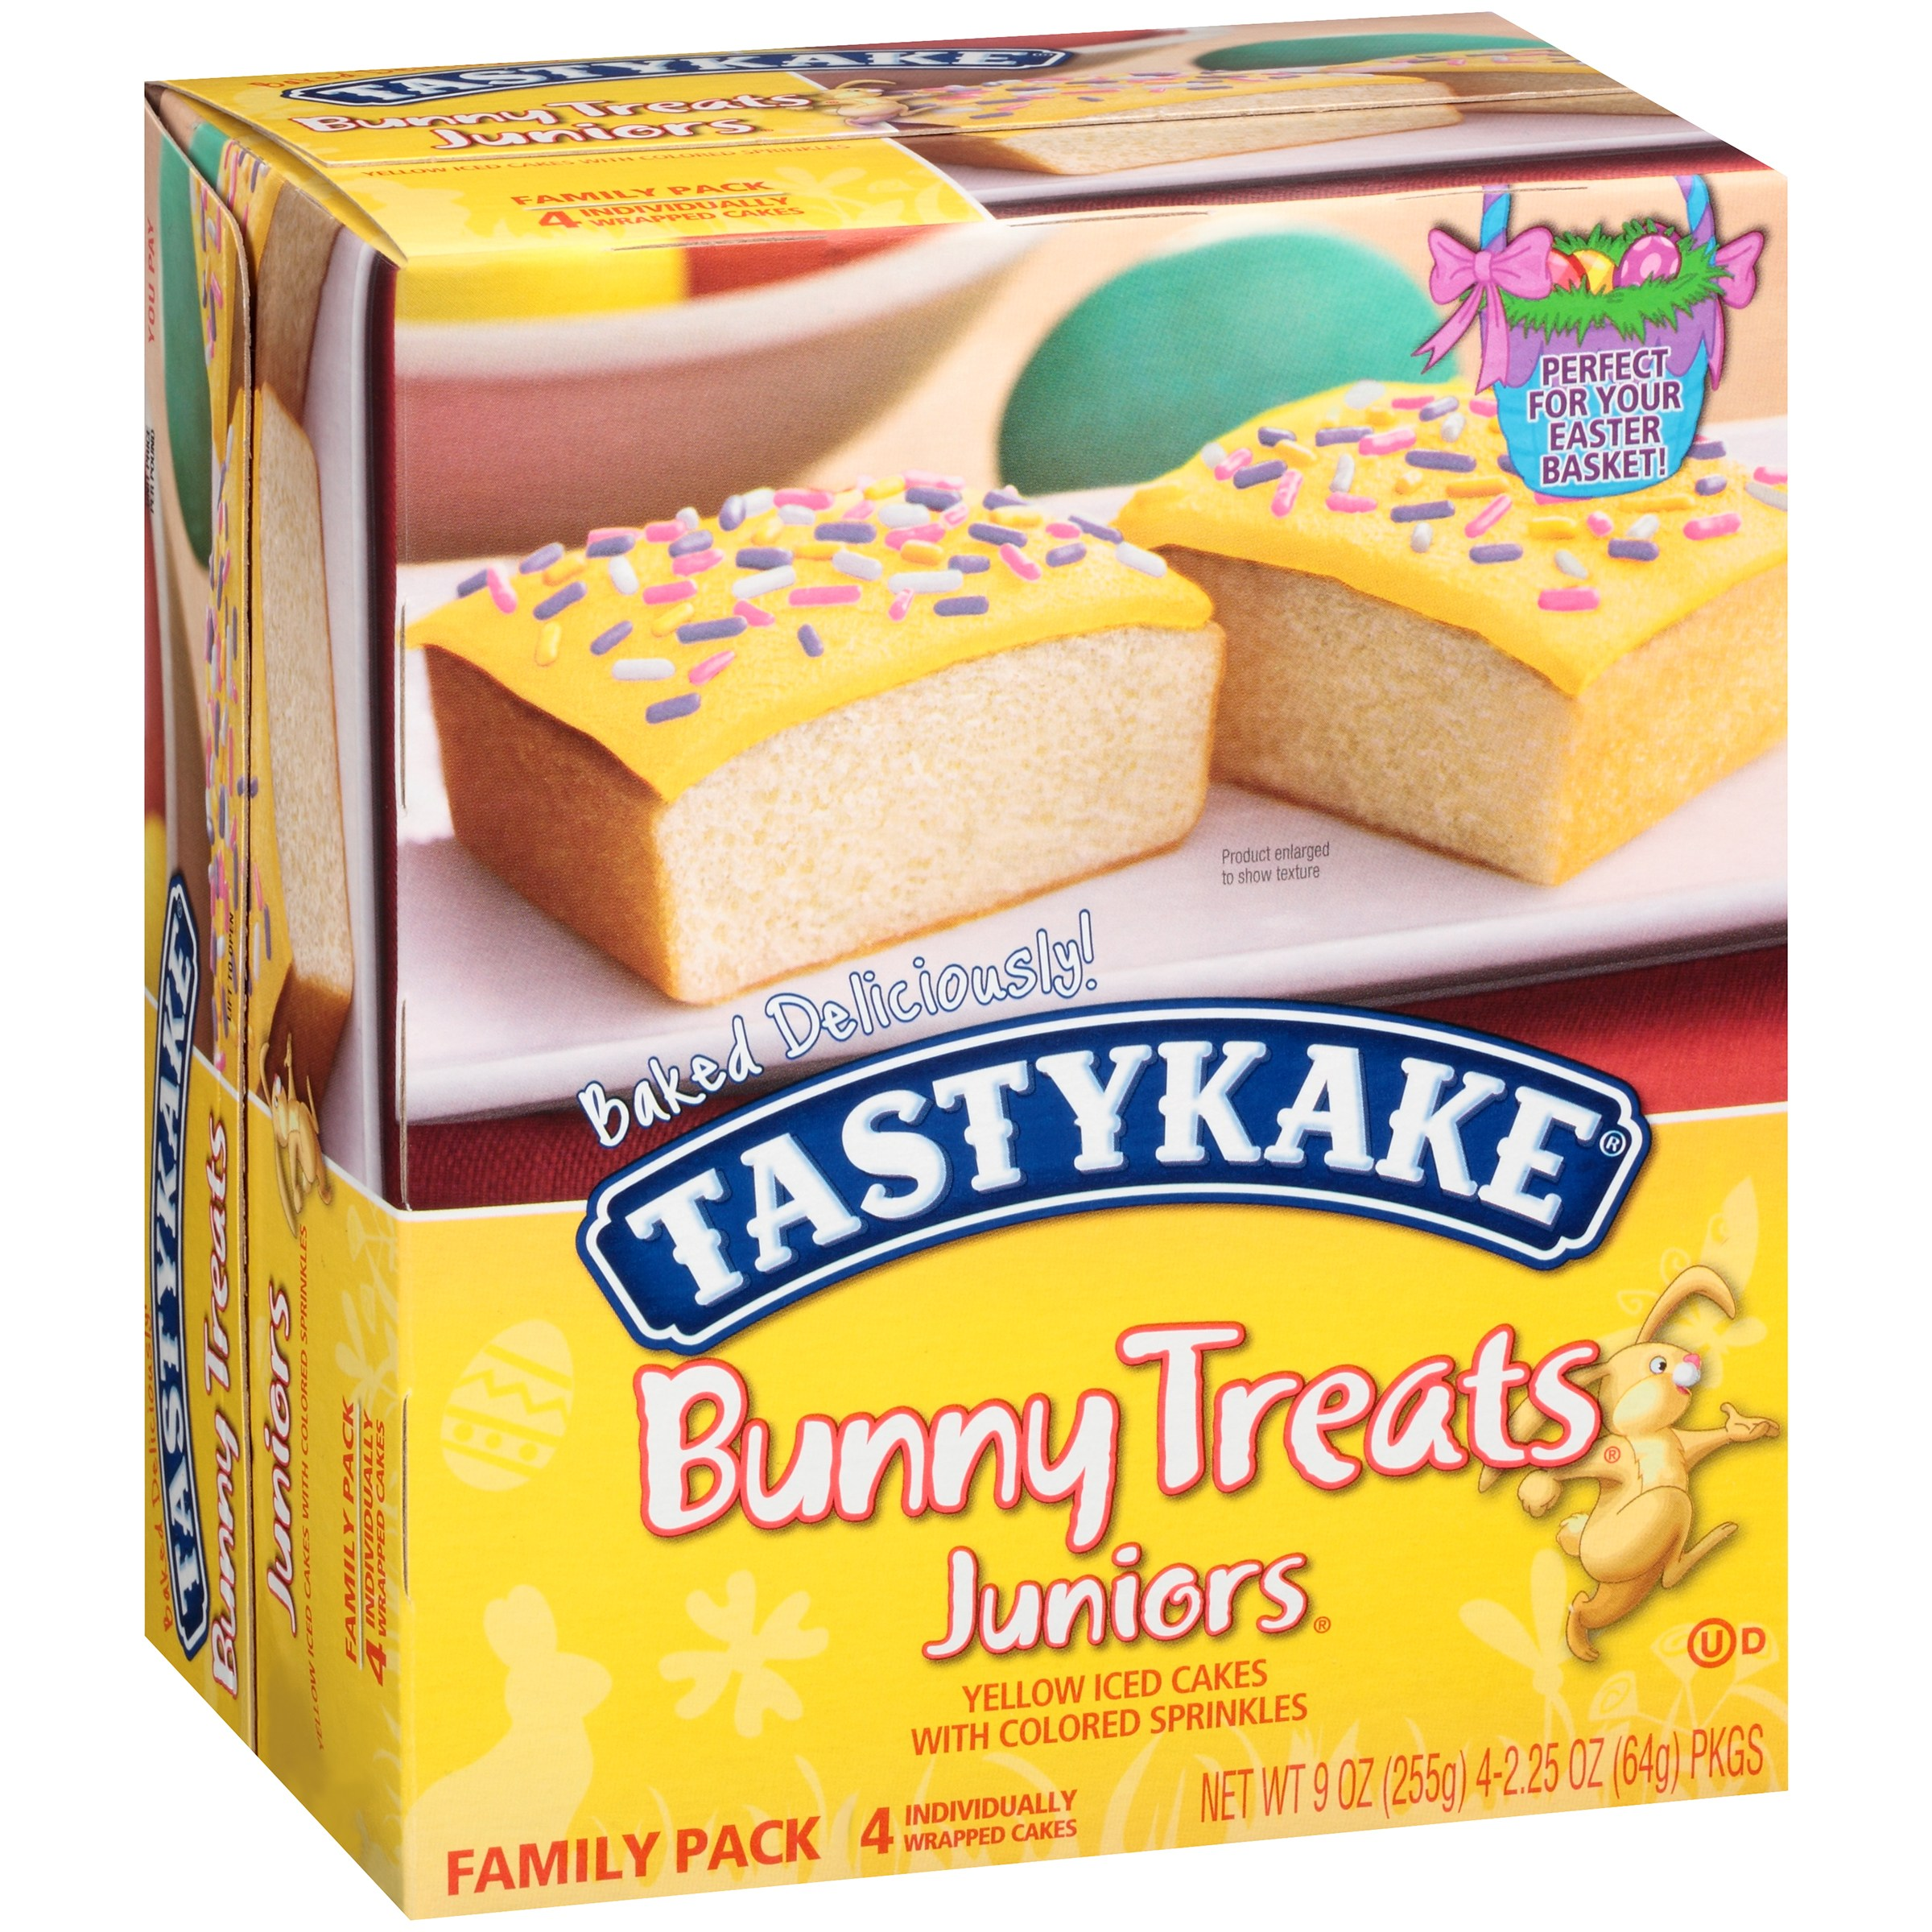 Fastykake® Bunny Treats Juniors® Yellow Iced Cakes with Colored Sprinkles 4 - 2.25 oz. Pkgs